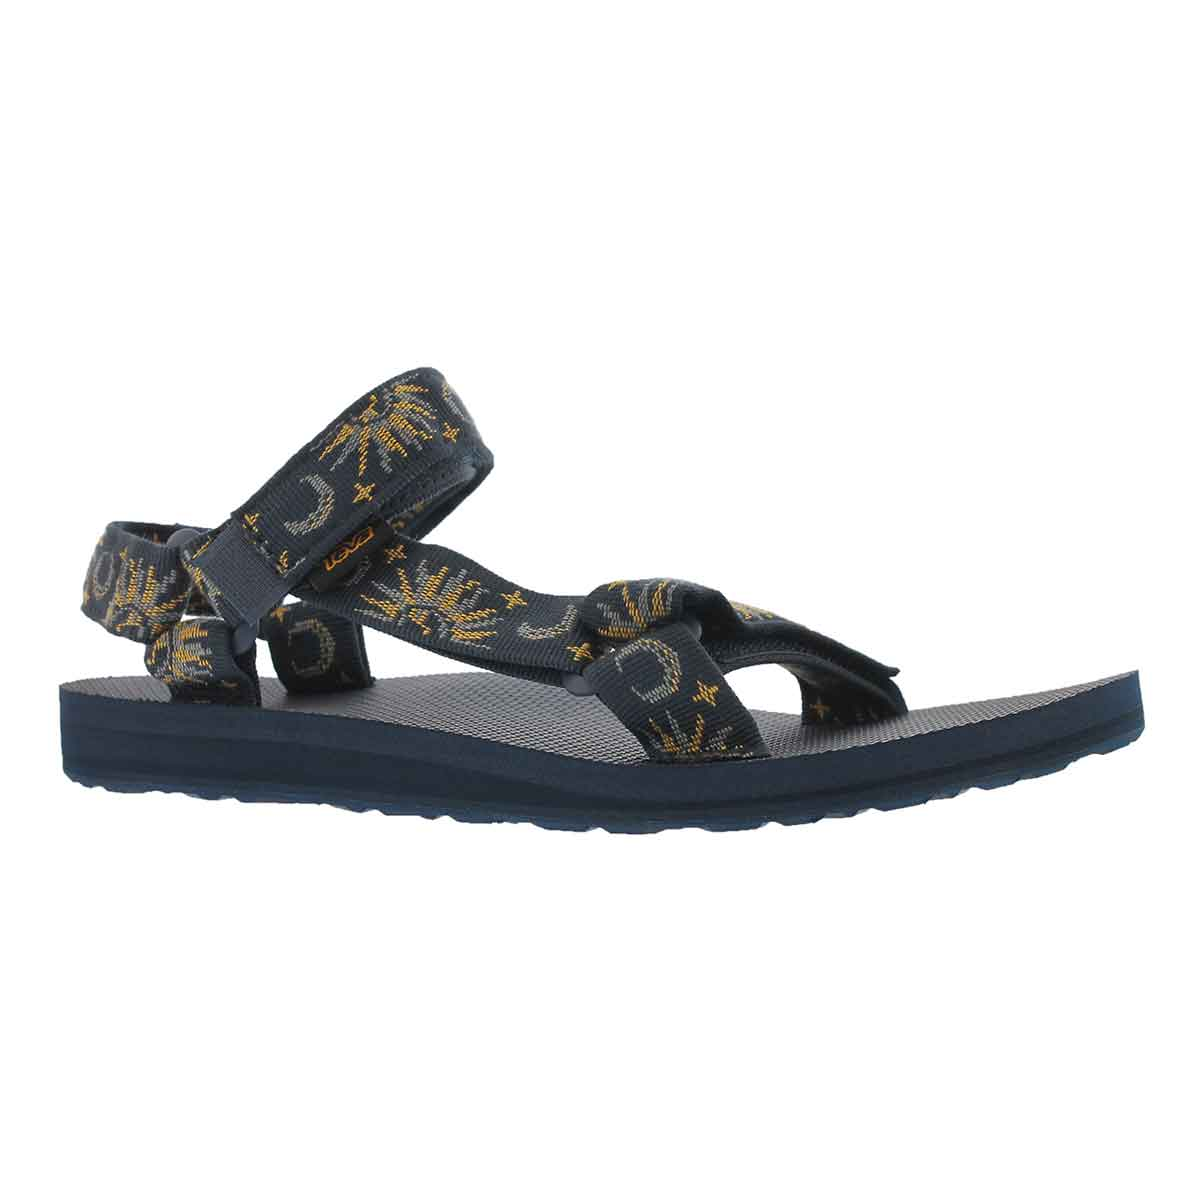 Women's ORIGINAL UNIVERSAL sun/moon sport sandals